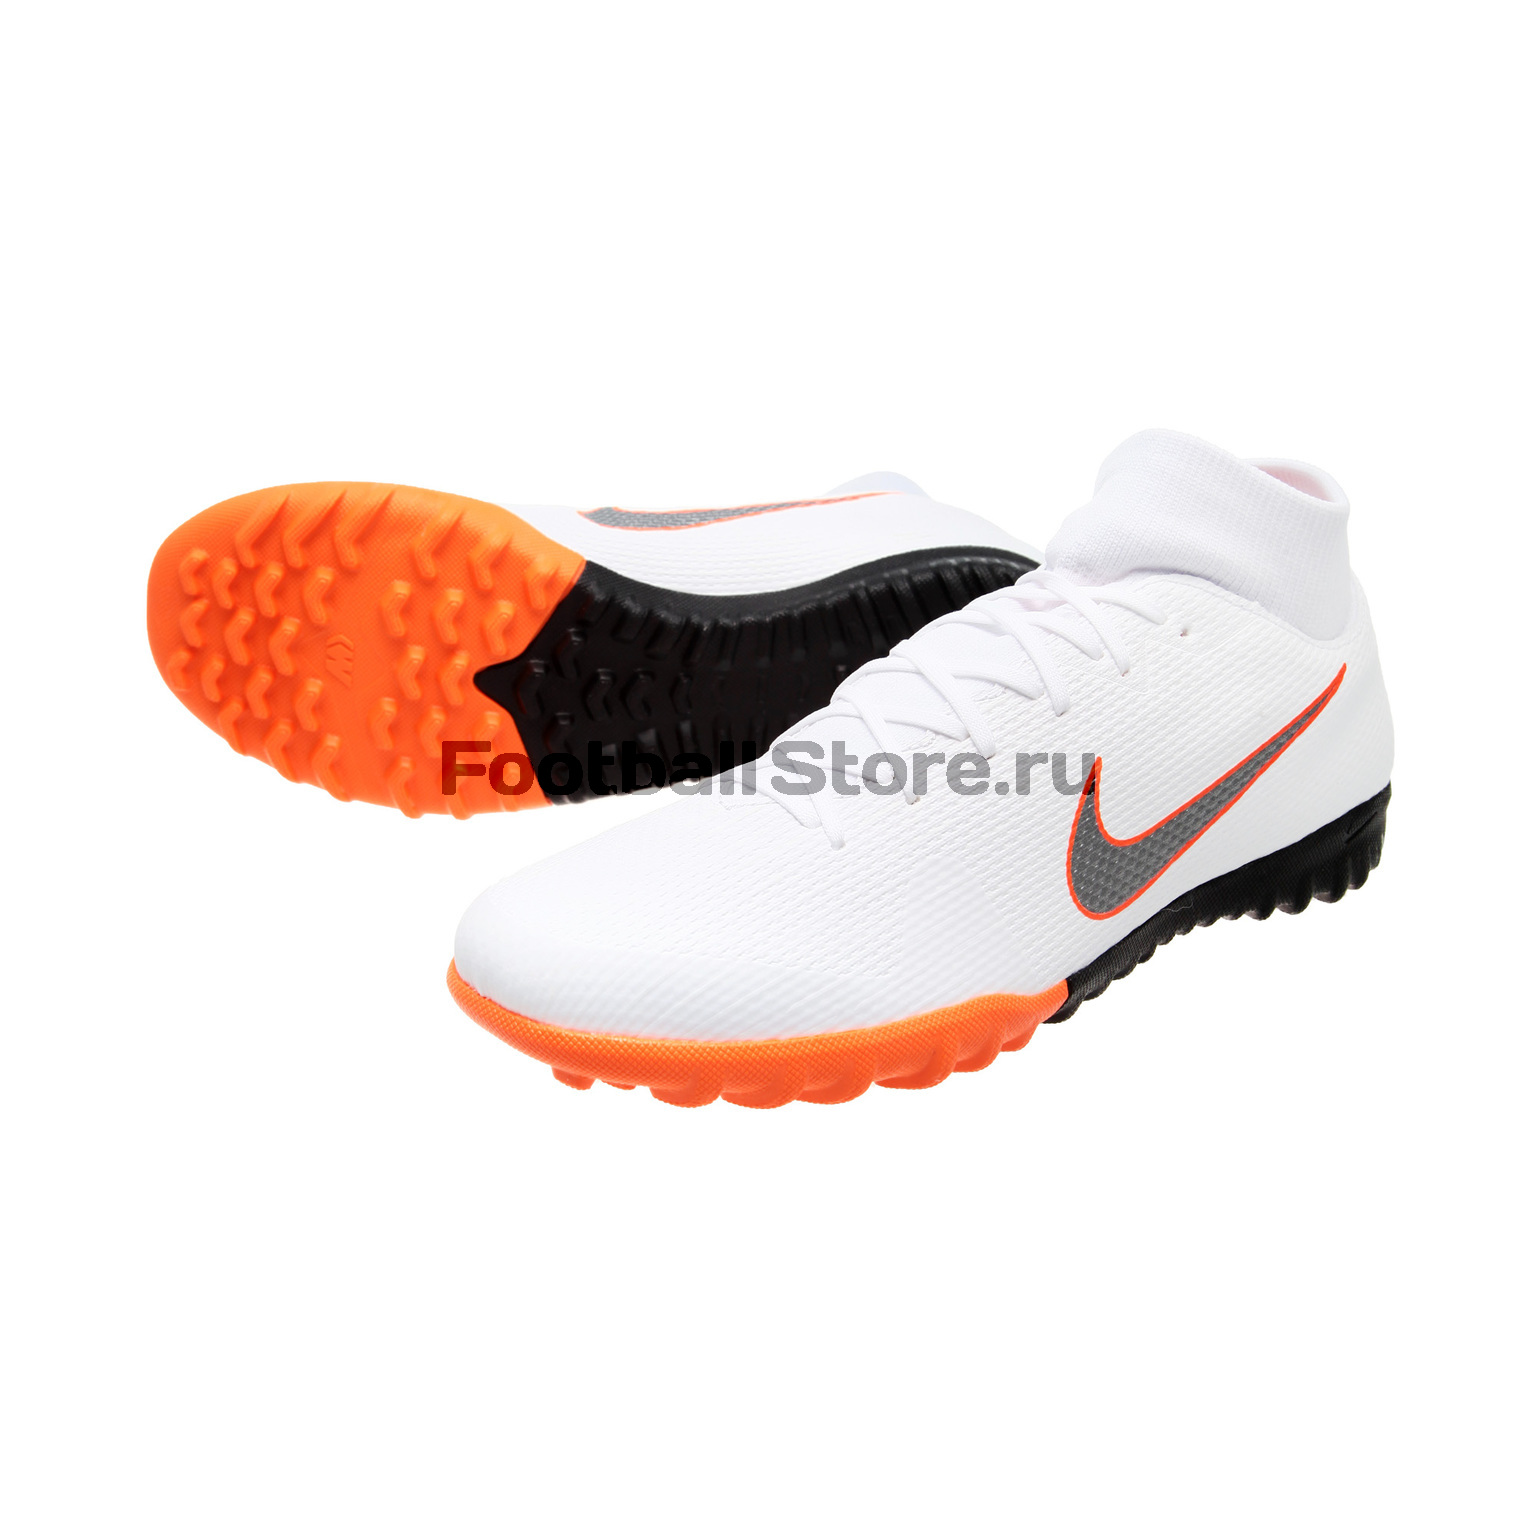 Шиповки Nike SuperFly X 6 Academy TF AH7370-107 шиповки nike lunar legendx 7 pro tf ah7249 080